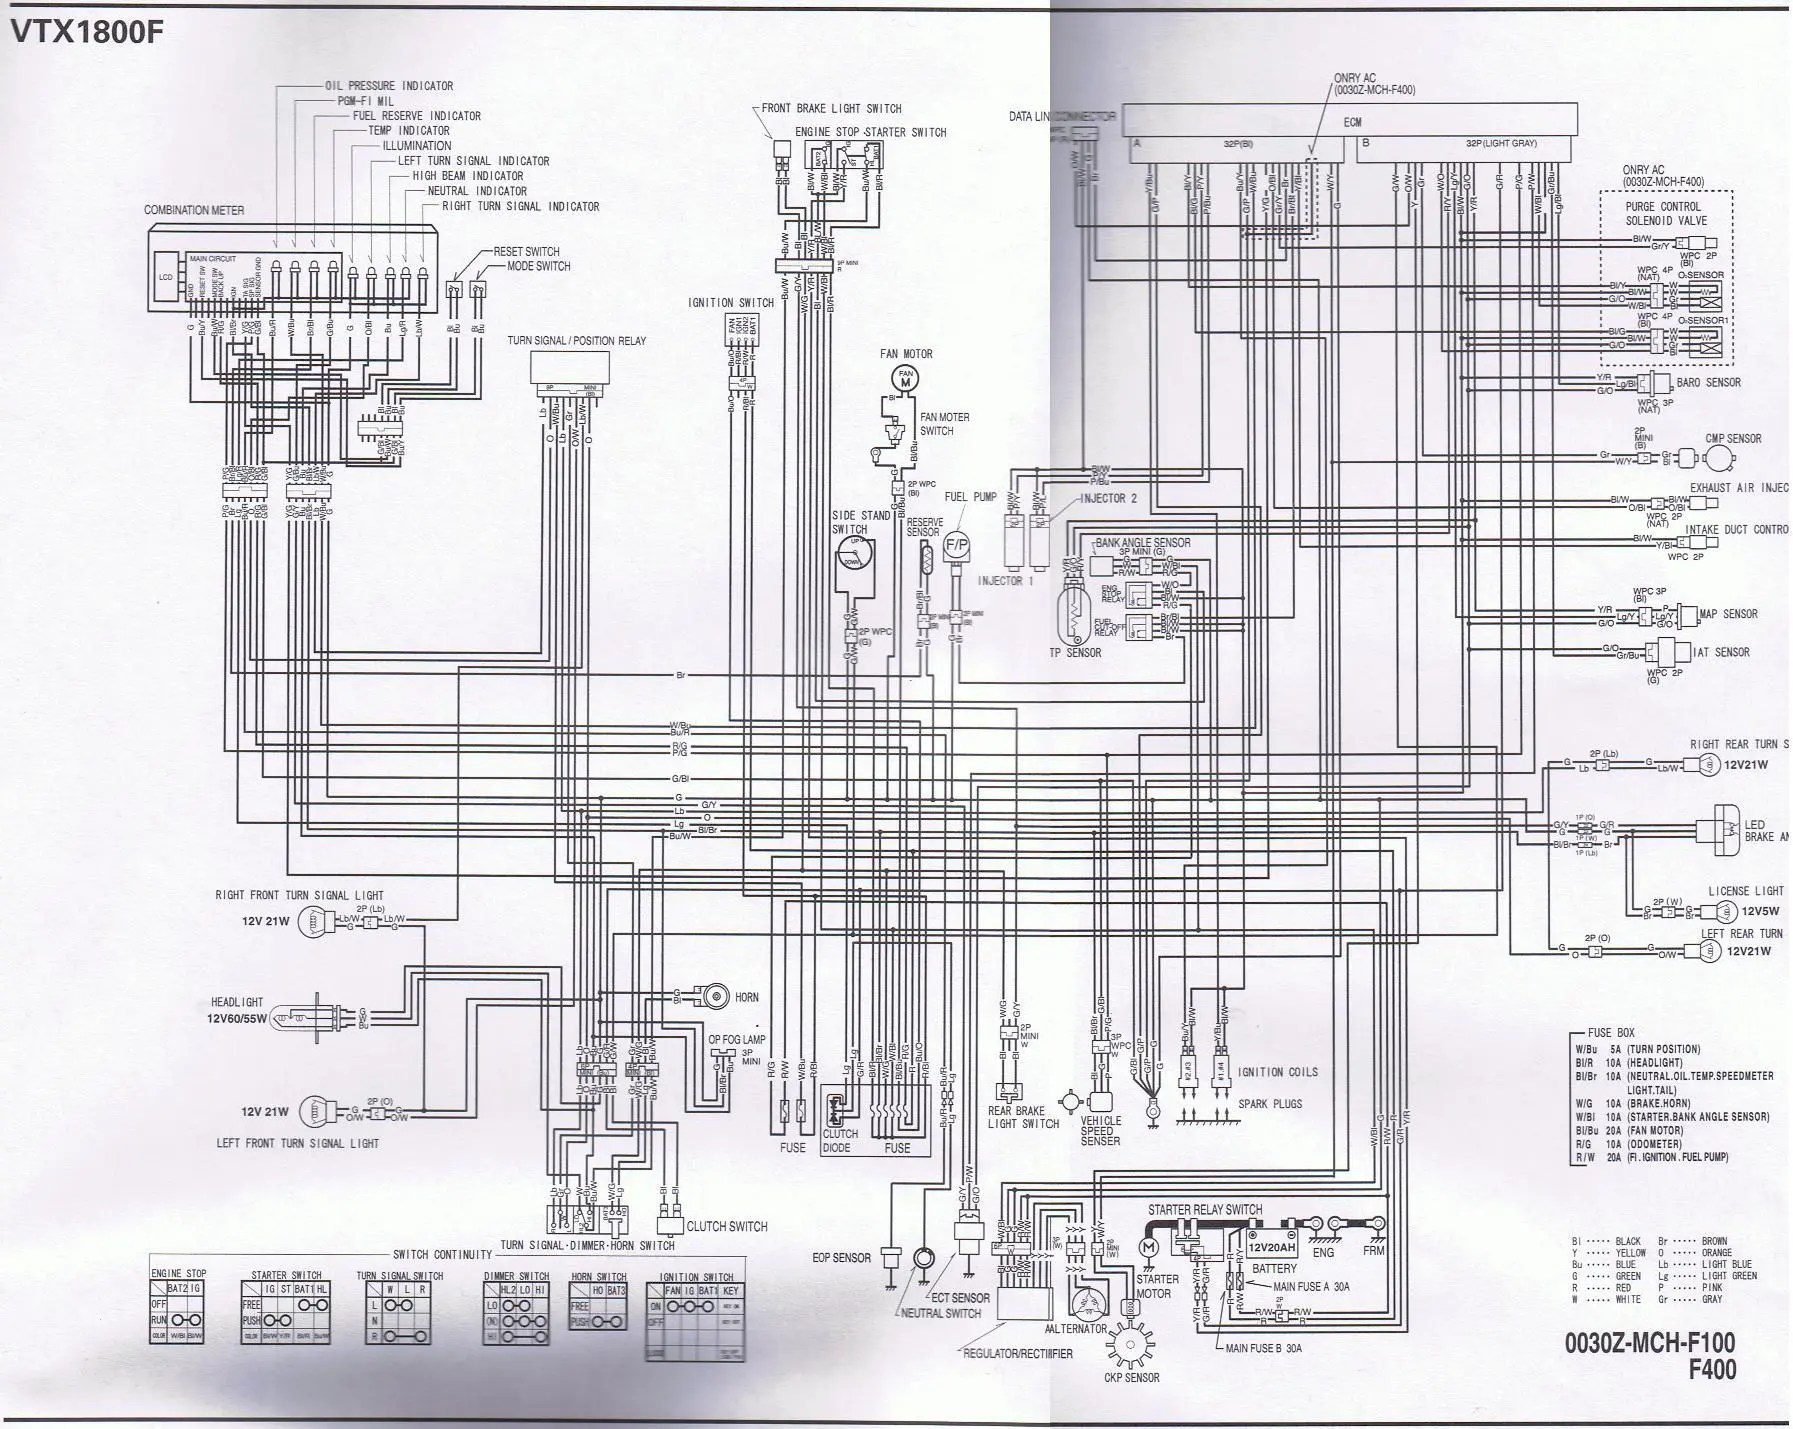 hight resolution of victory wiring diagram wiring diagram megavictory wiring diagram wiring diagram go victory hammer wiring diagram 2006